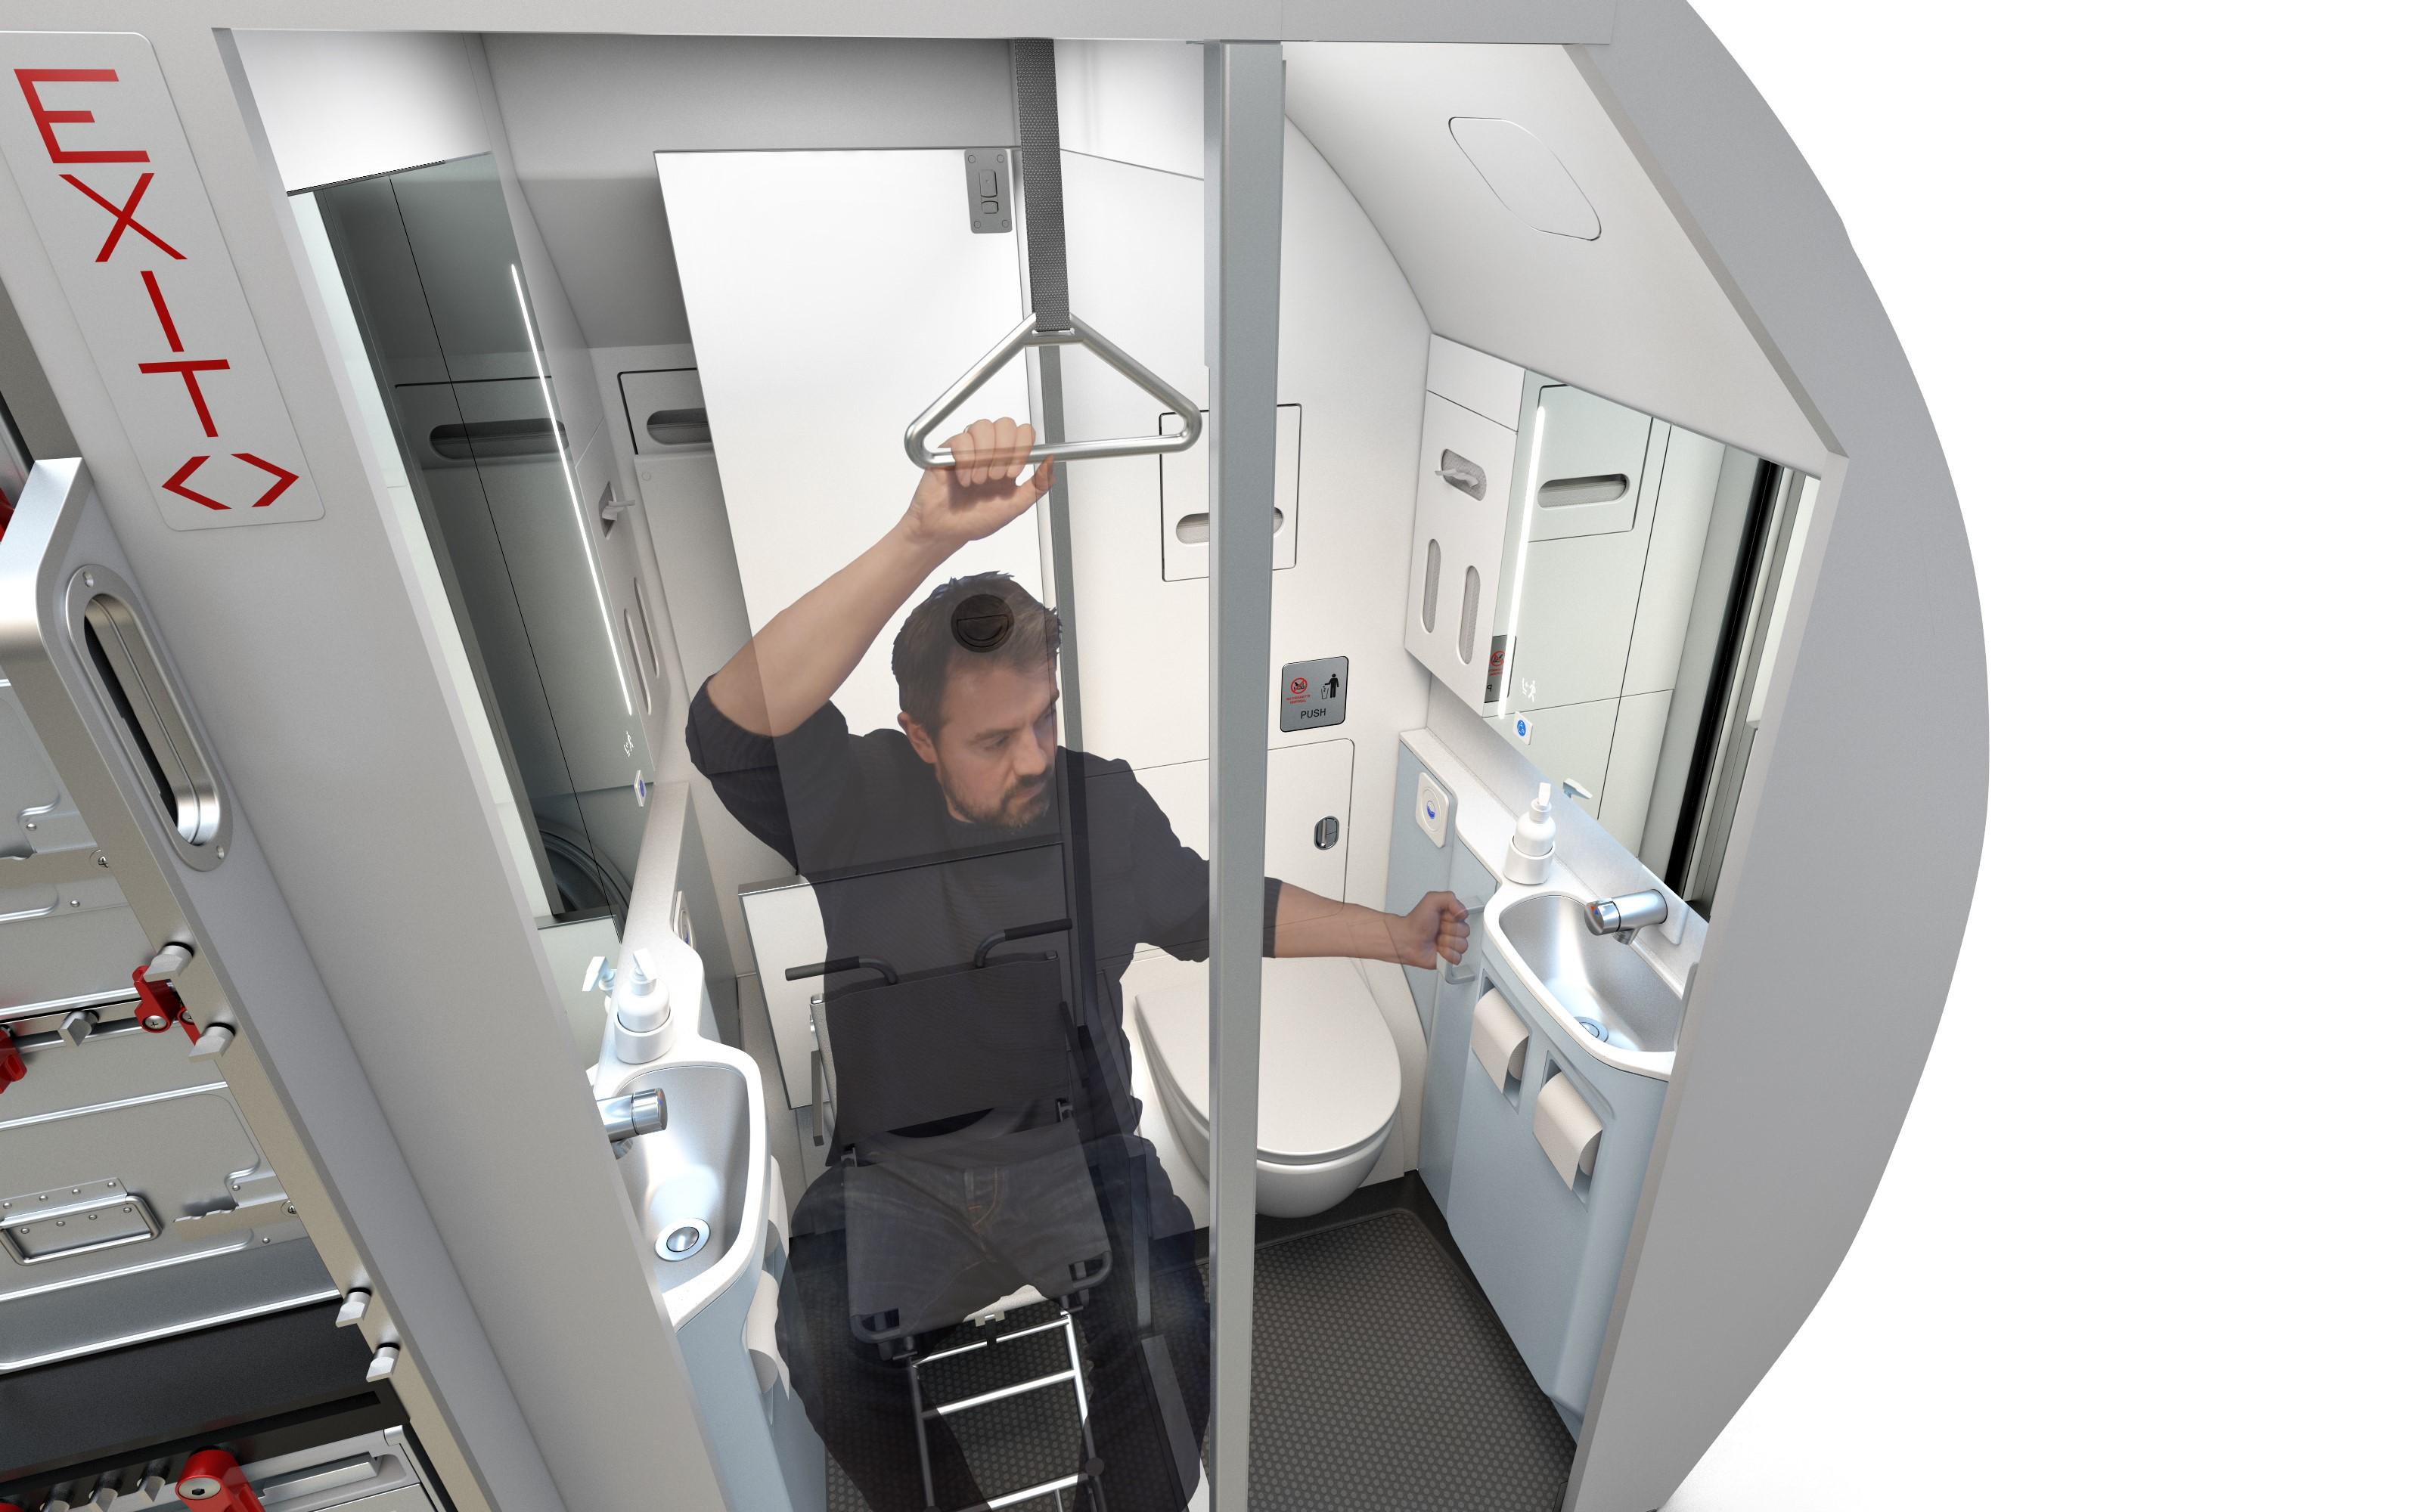 With the help of ceiling and wall handles, wheelchair users can lift themselves to the toilet.